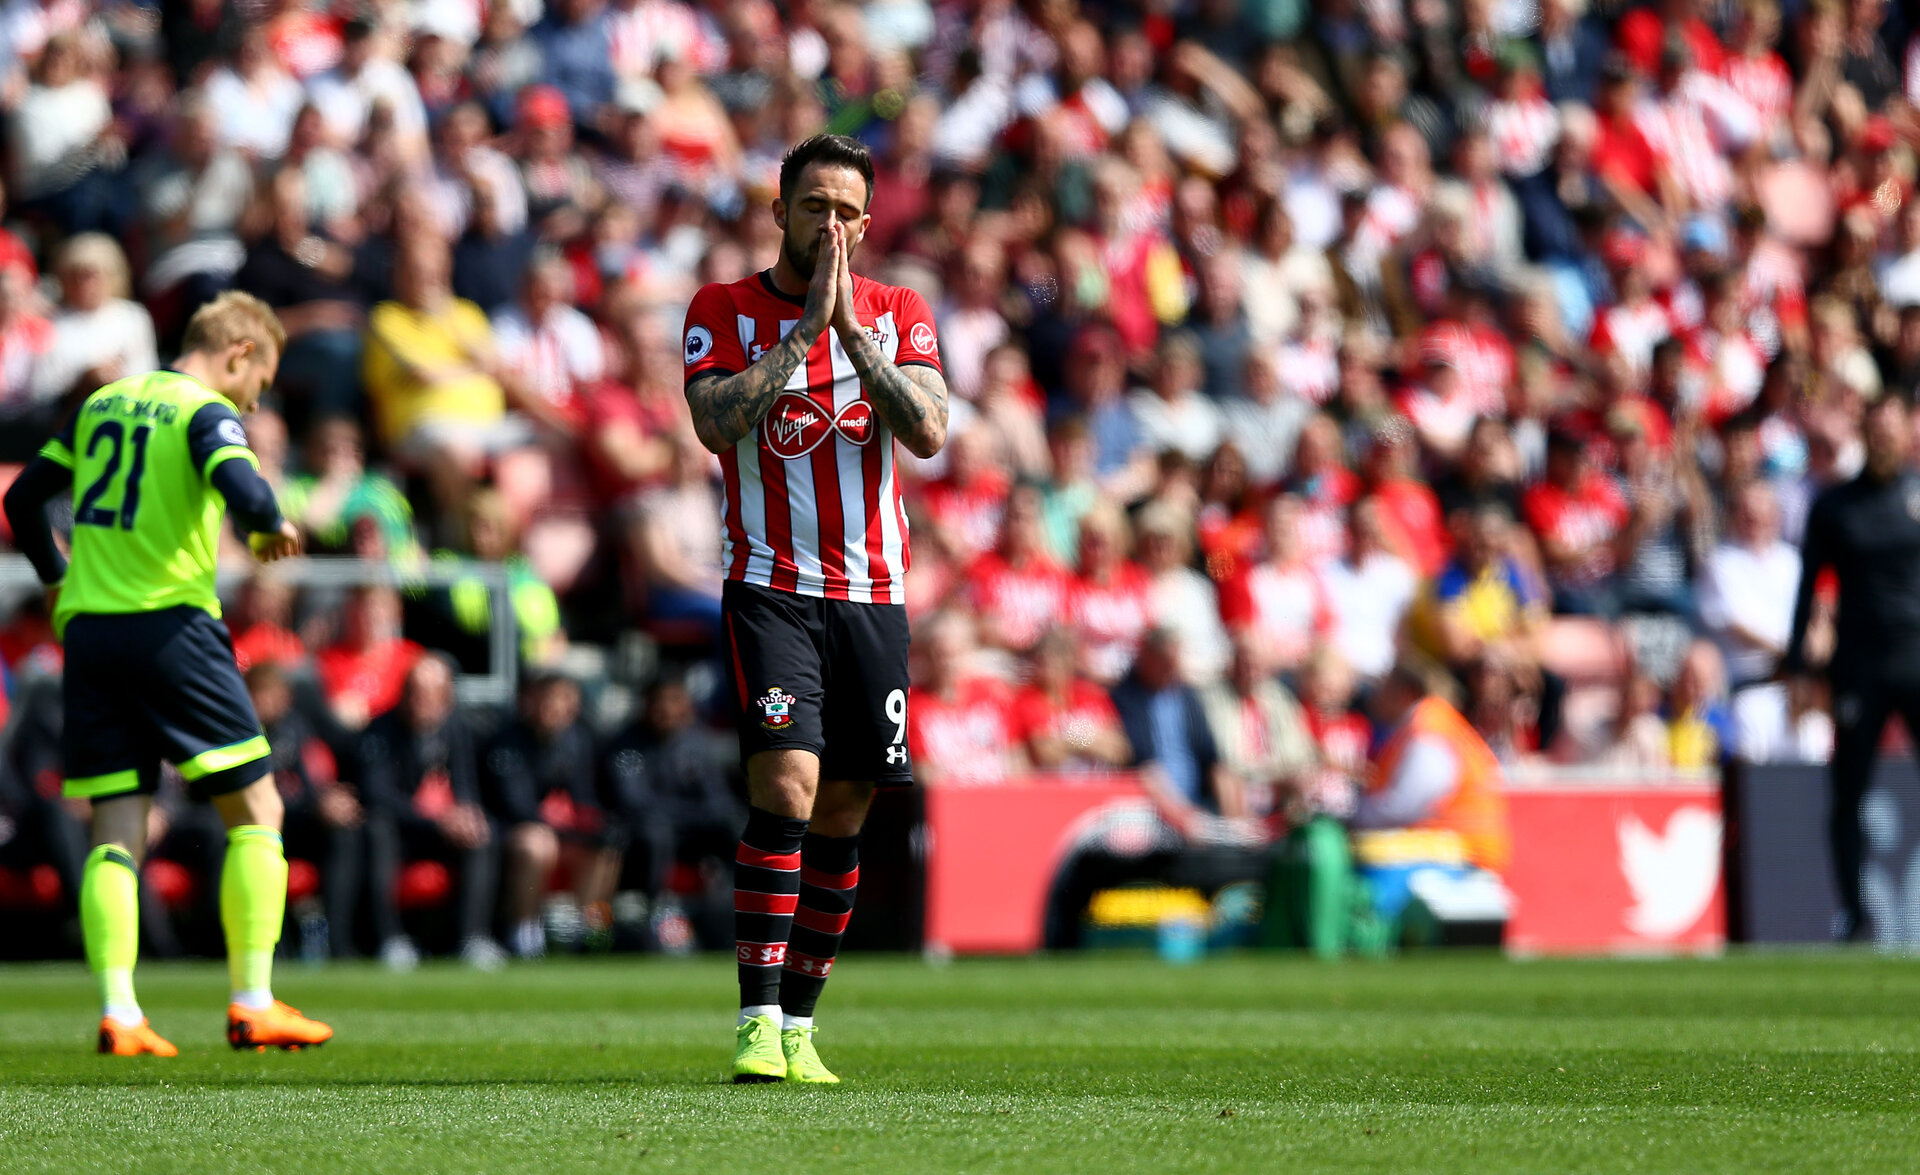 SOUTHAMPTON, ENGLAND - MAY 12: Danny Ings of Southampton during the Premier League match between Southampton FC and Huddersfield Town at St Mary's Stadium on May 12, 2019 in Southampton, United Kingdom. (Photo by Matt Watson/Southampton FC via Getty Images)